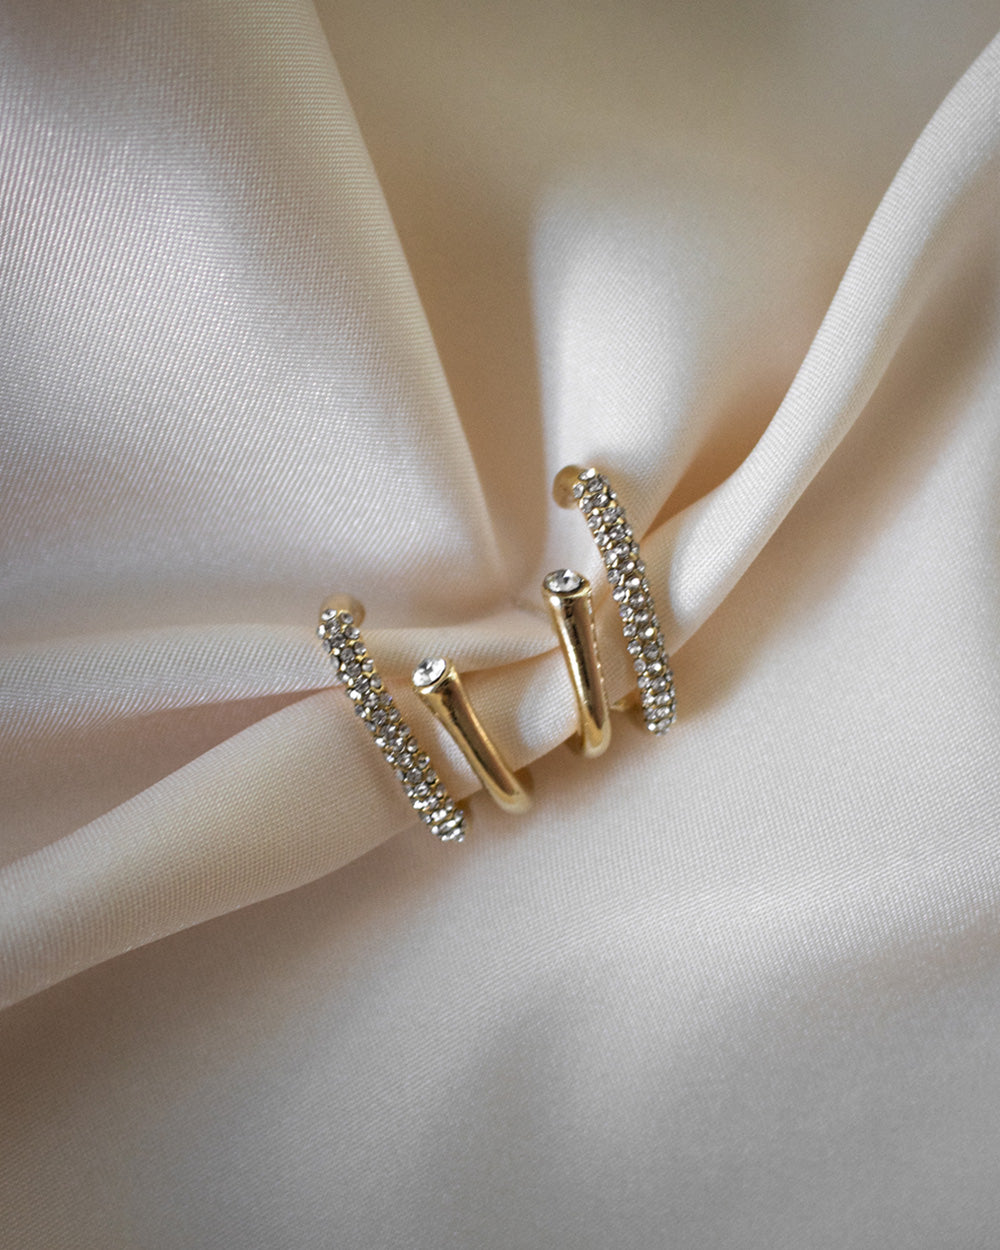 The duet suspender earrings features two gold bars embedded with shiny cubic zirconia stones - The Hexad Jewelry